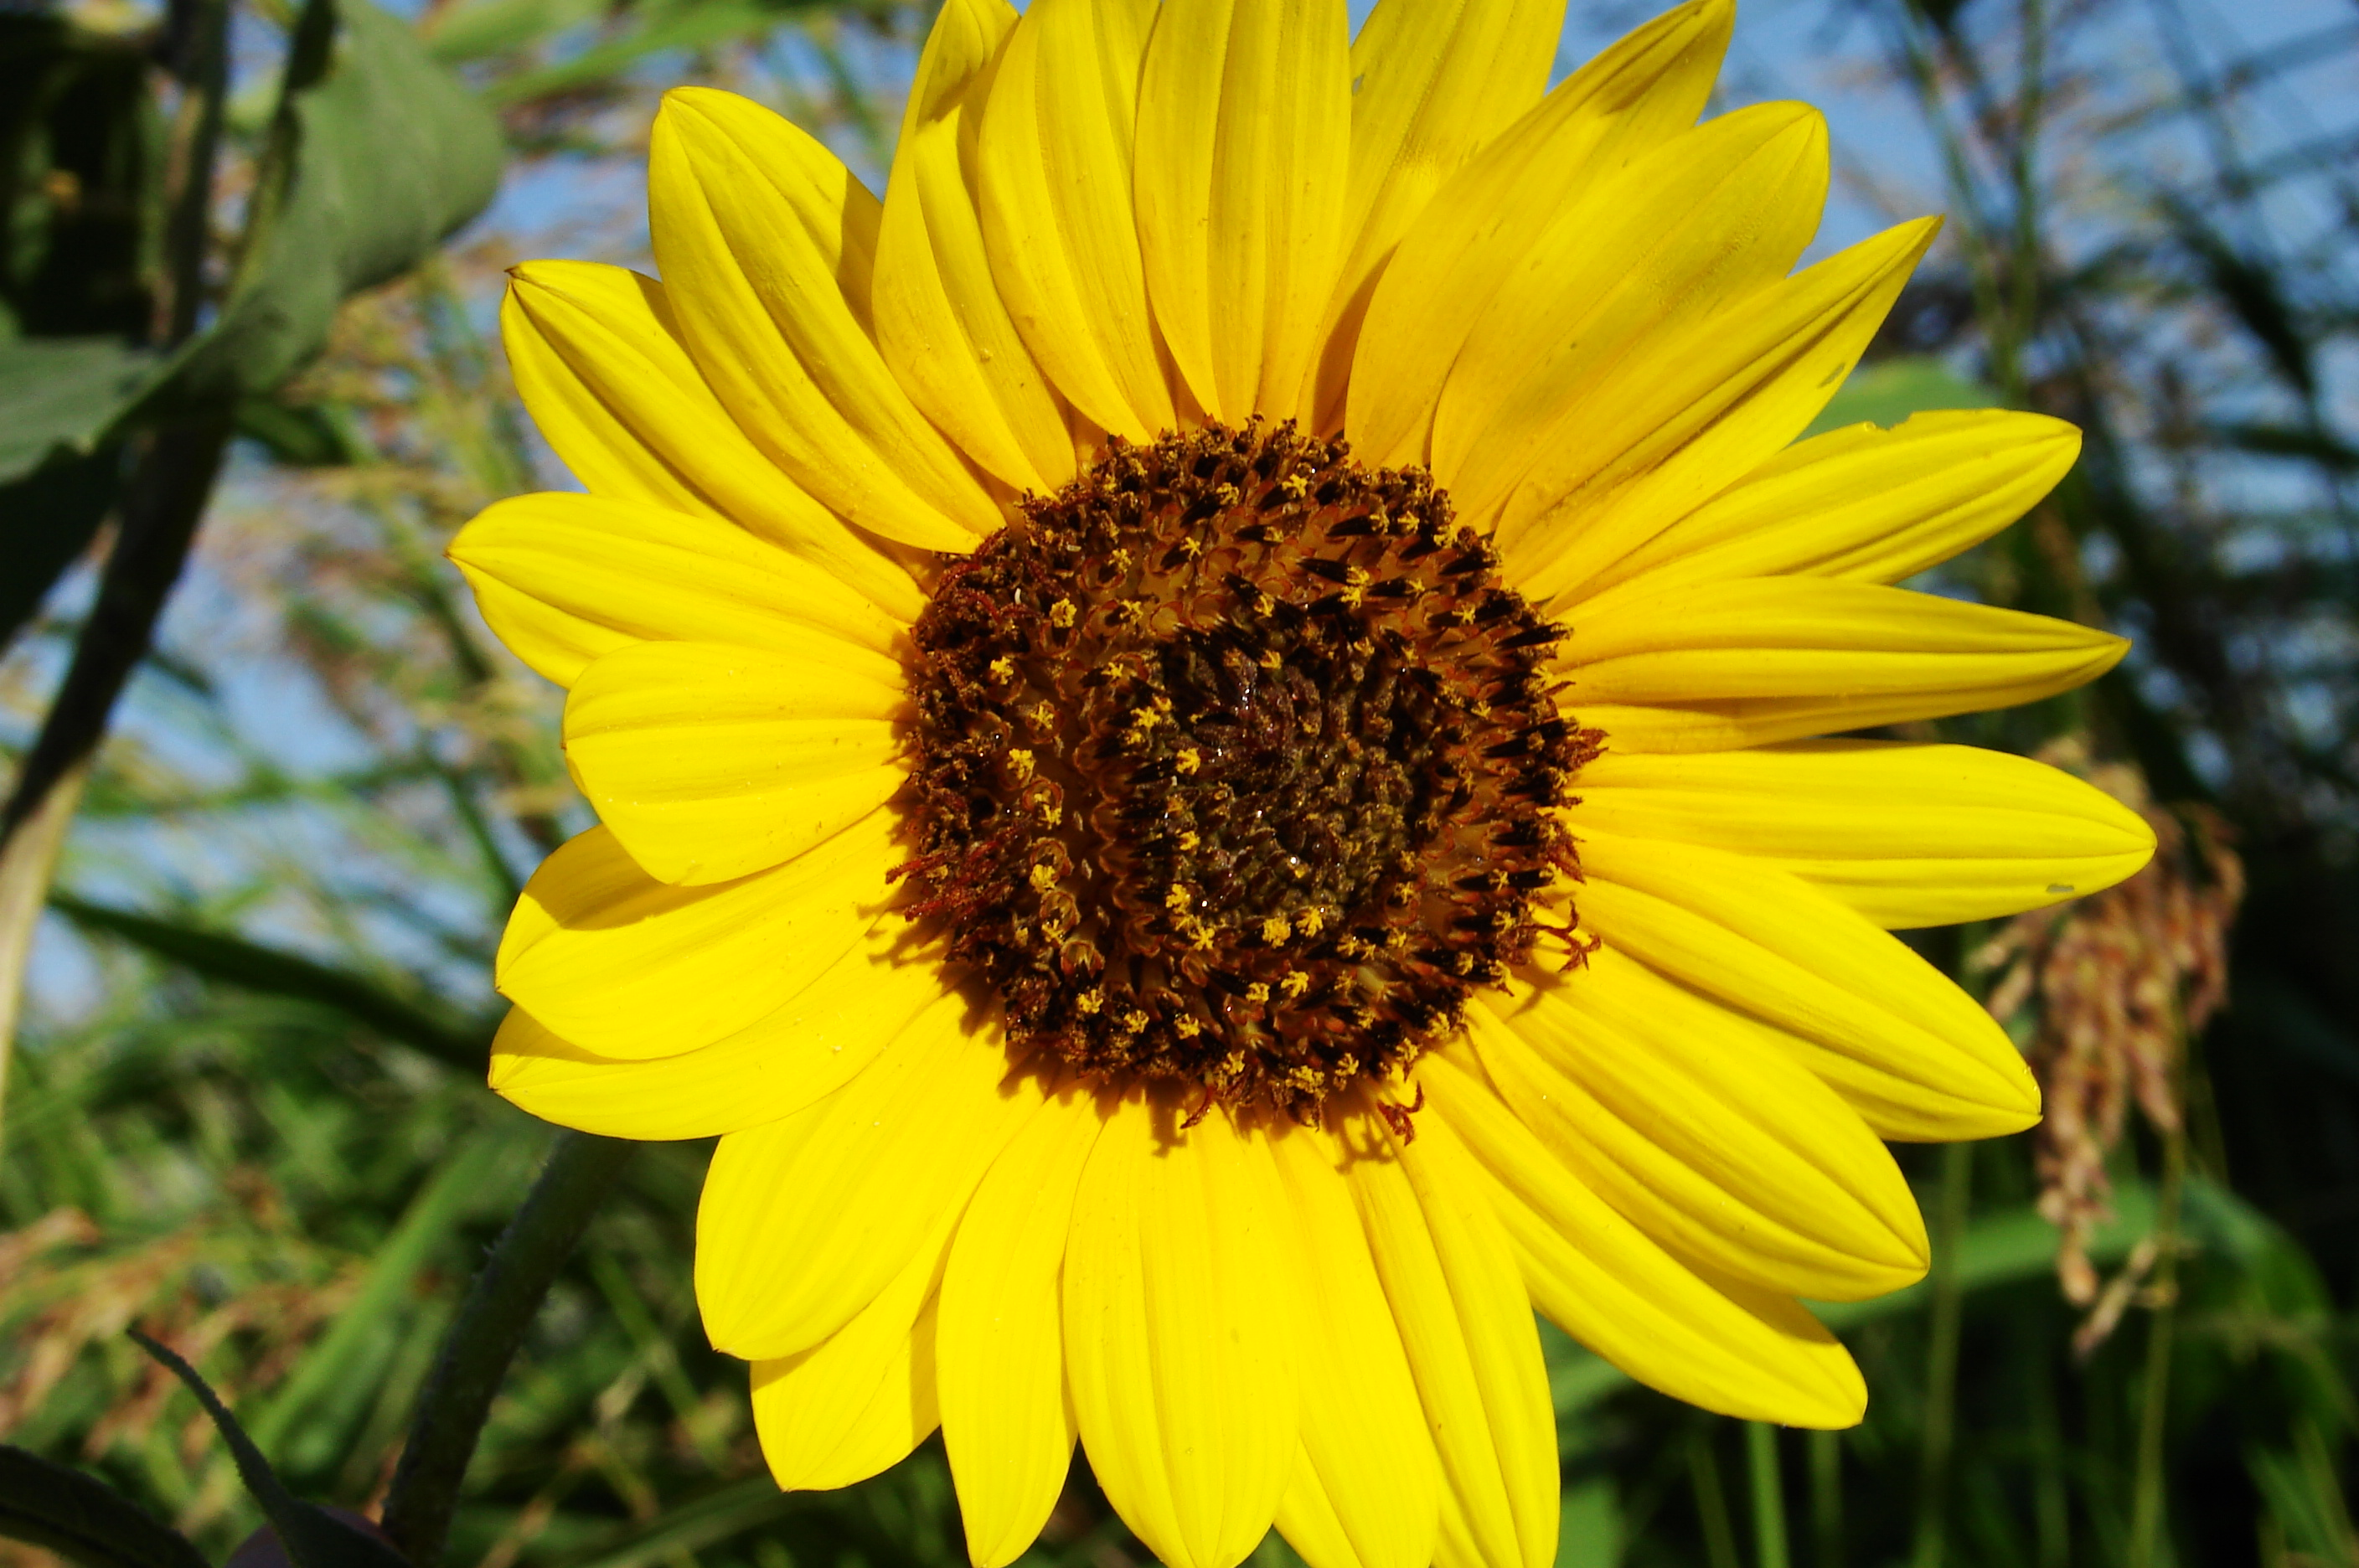 sun flowers and flower - photo #22